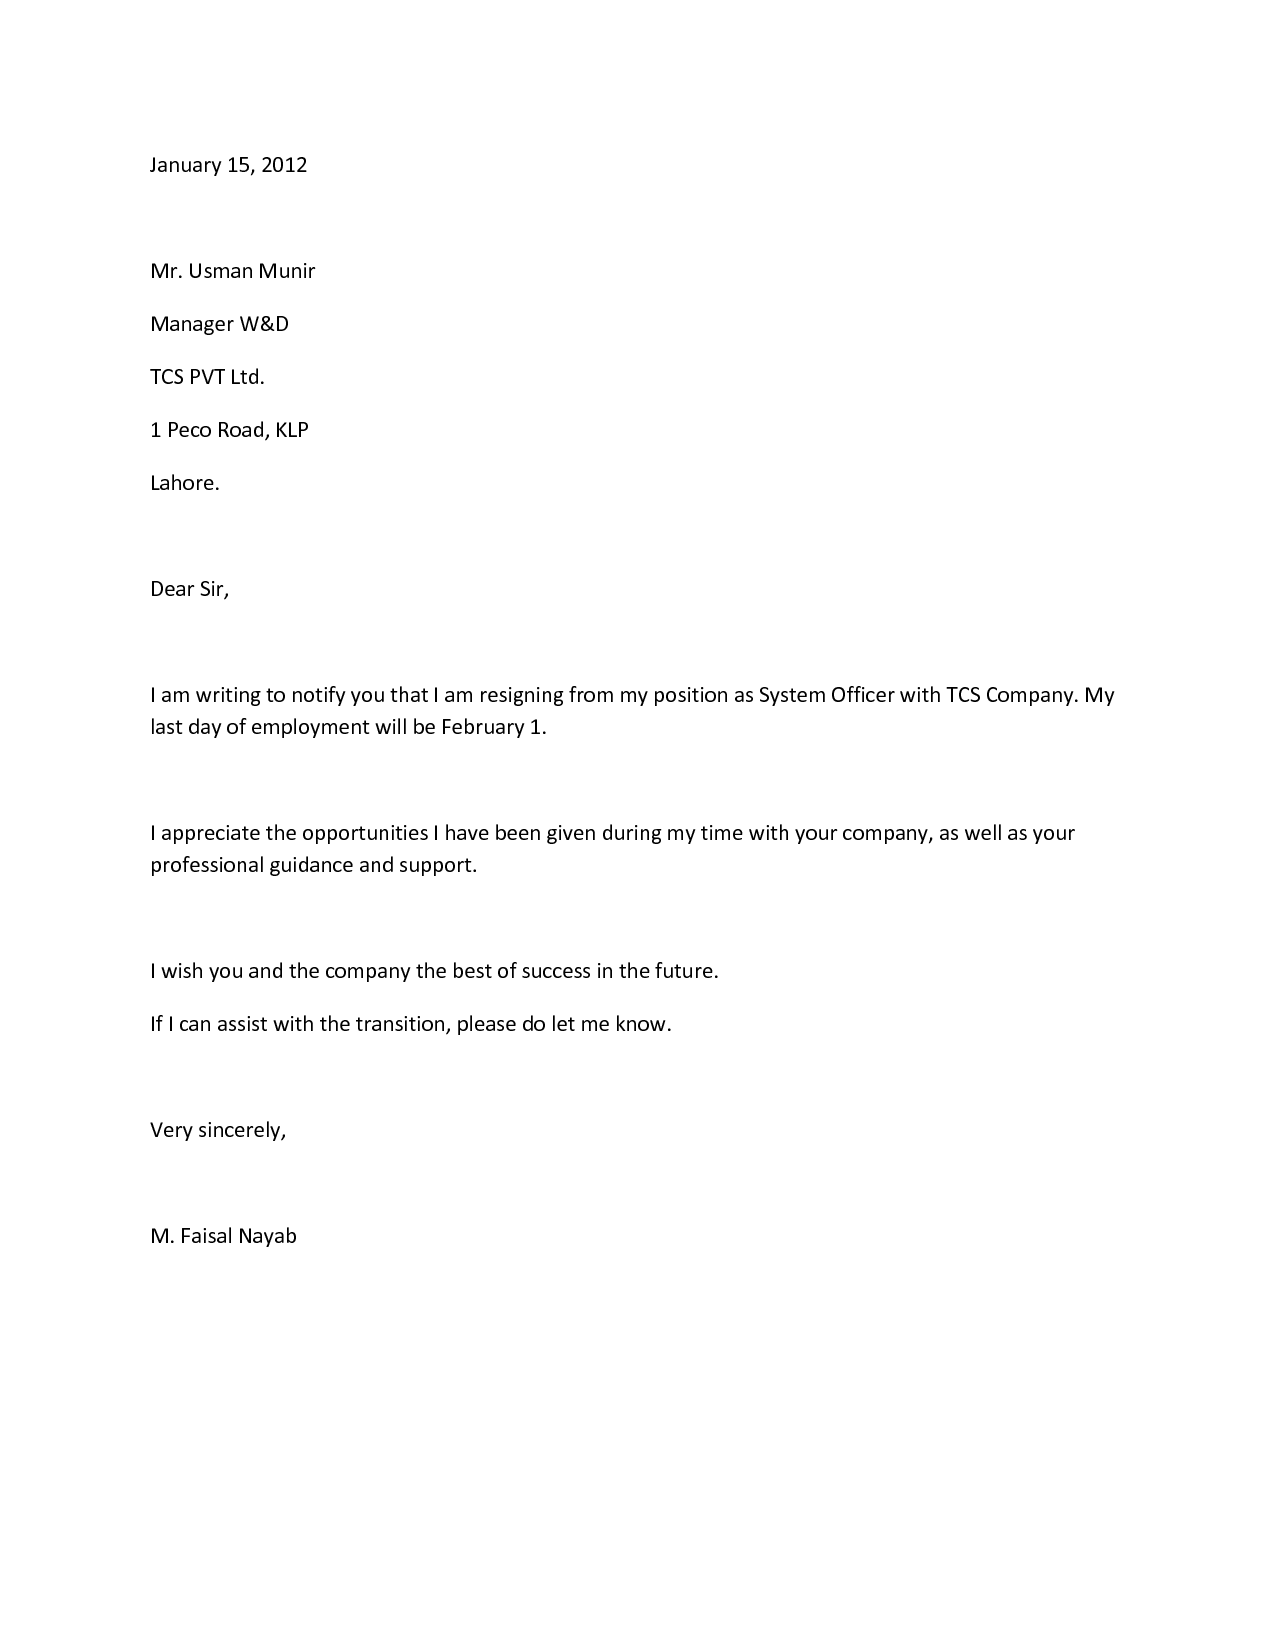 two week resignation letter samples resignation letter2 resignation letters 101 ddj pinterest letter sample letters and resignation letter